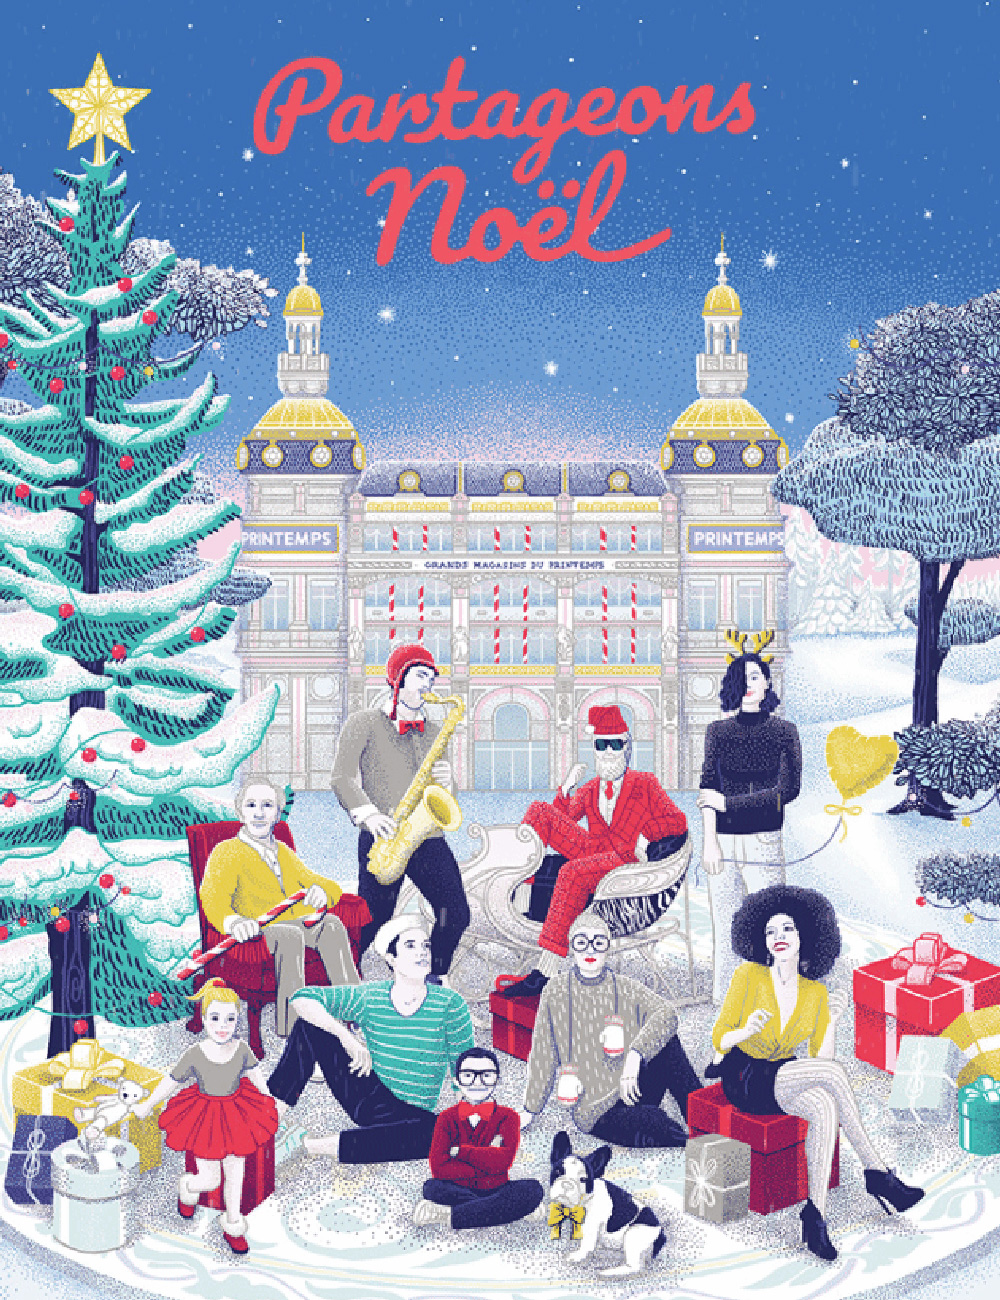 Printemps-Polygone-Riviera-catalogue-Noel